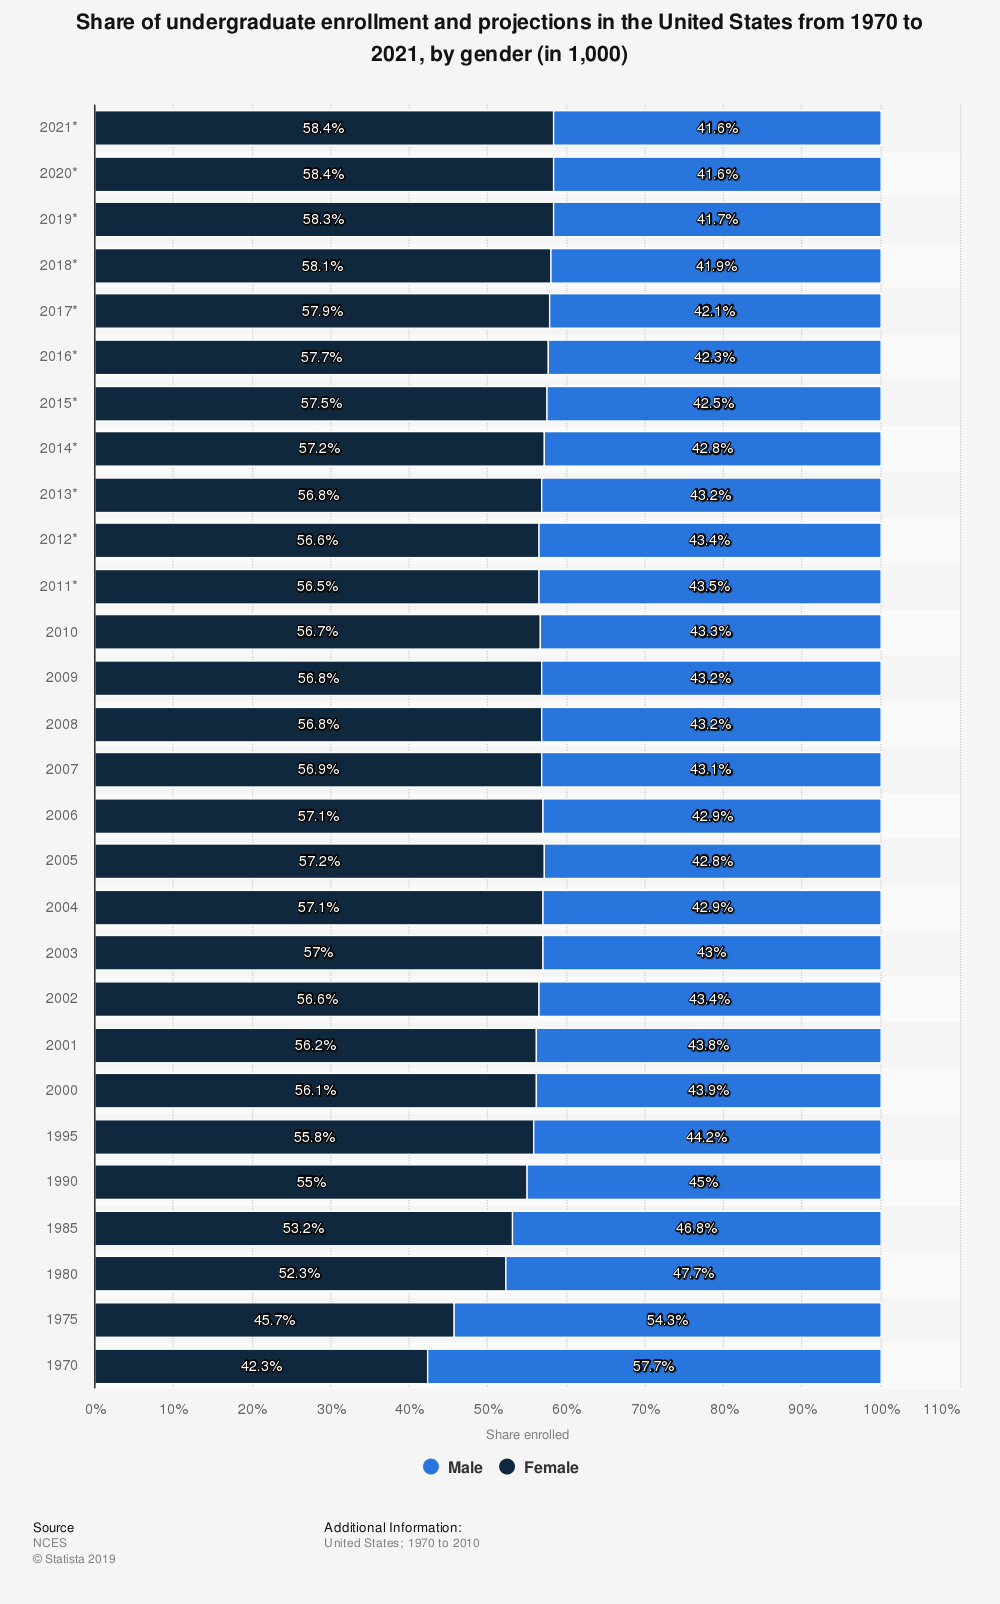 Statistic: Share of undergraduate enrollment and projections in the United States from 1970 to 2021, by gender (in 1,000) | Statista